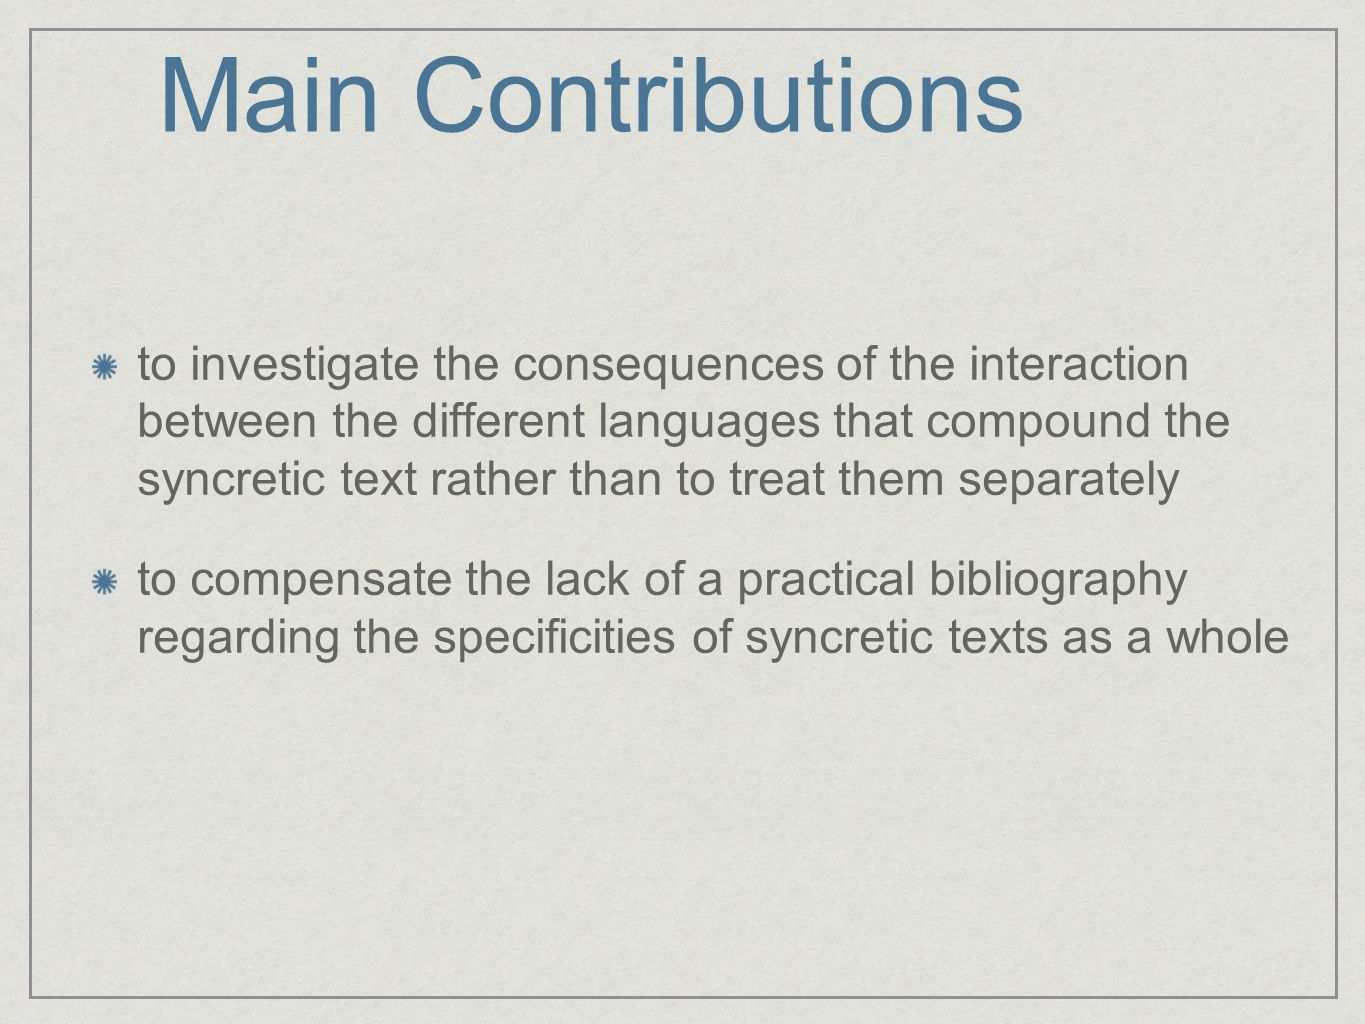 Main Contributions to investigate the consequences of the interaction between the different languages that compound the syncretic text rather than to